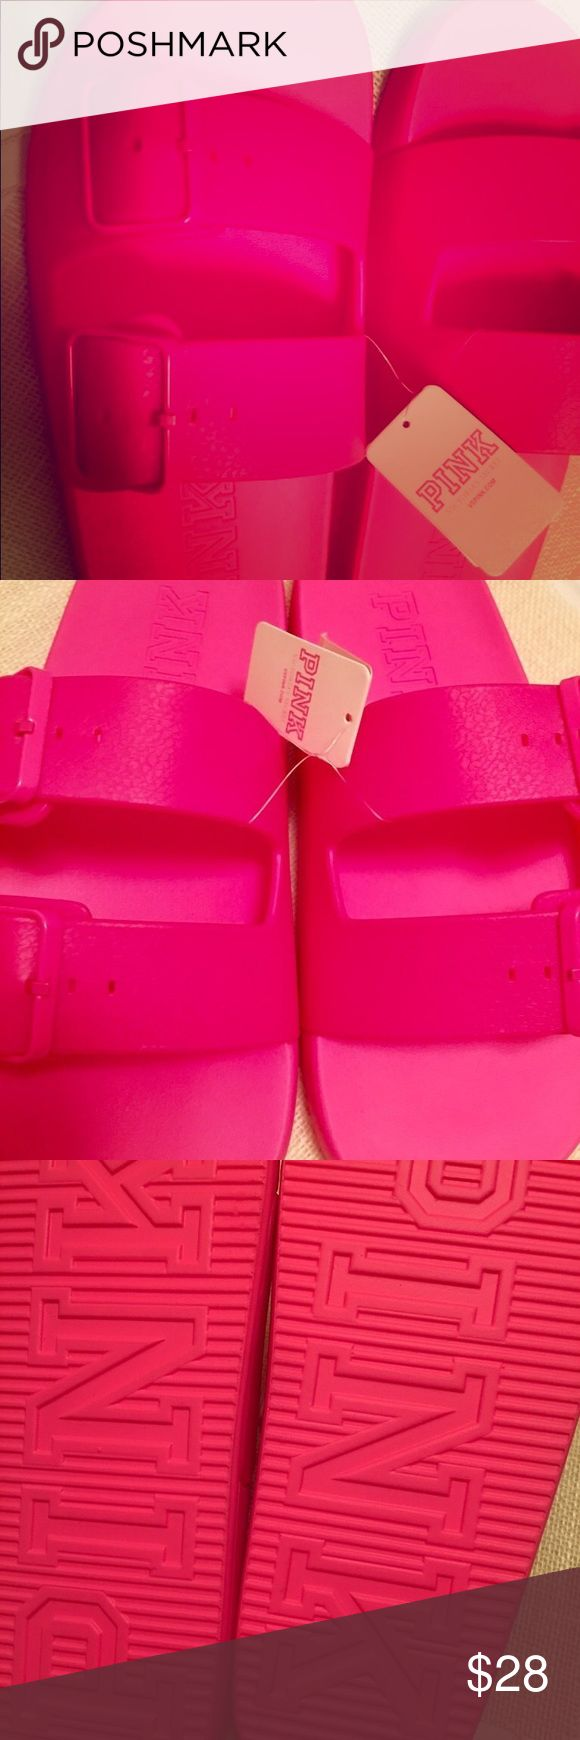 PINK Slippers size 8 😍😍😍 PINK Slippers size 8 😍😍😍 like Medium PINK Shoes Slippers